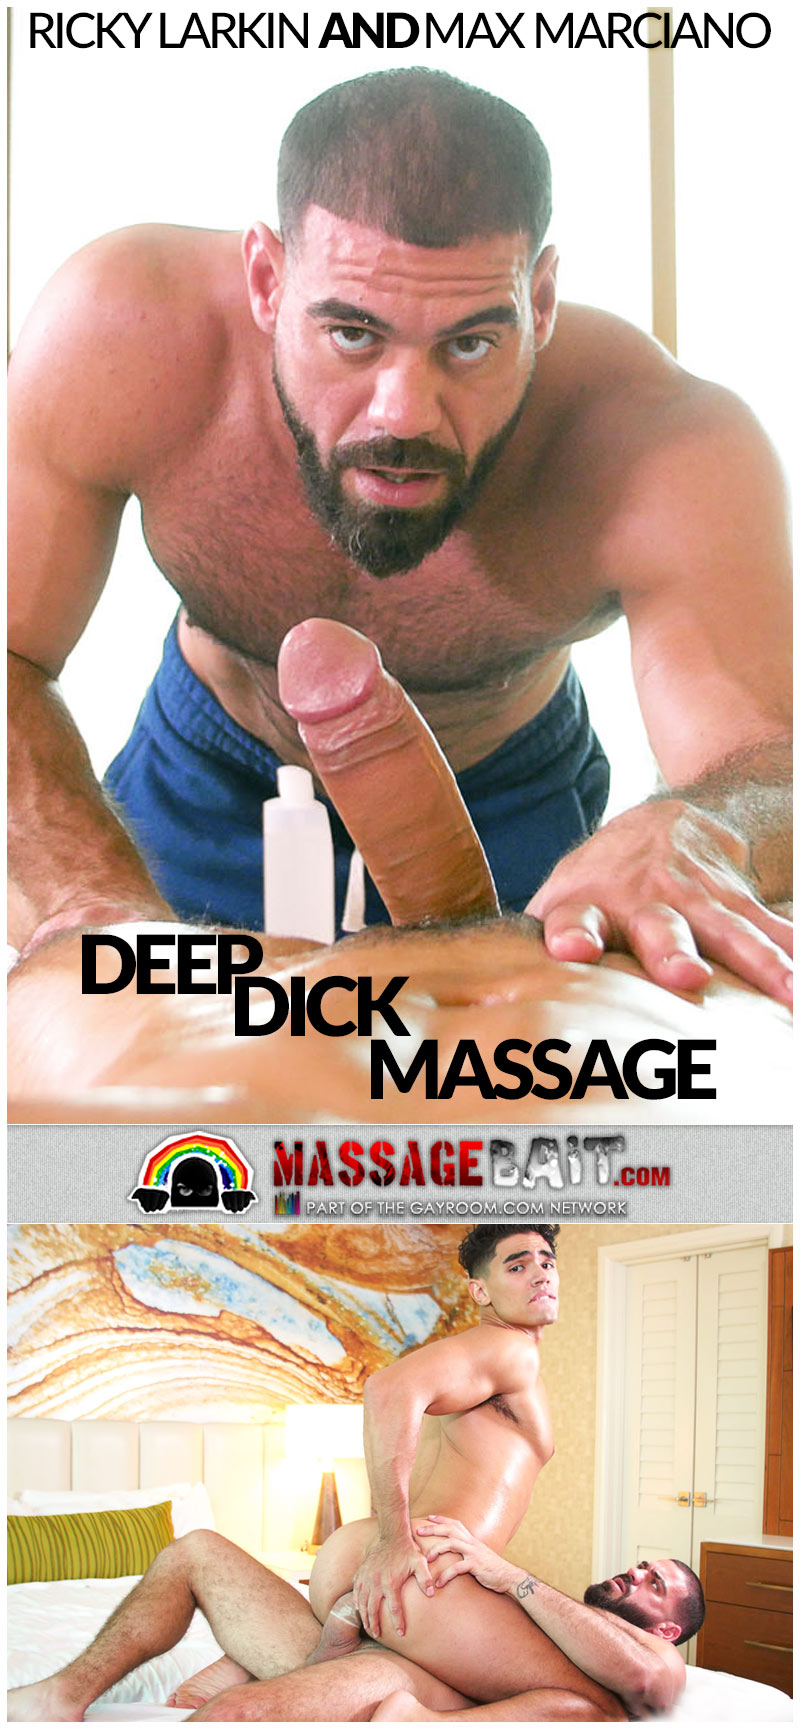 Deep Dick Massage (Ricky Larkin Fucks Max Marciano) at GayRoom